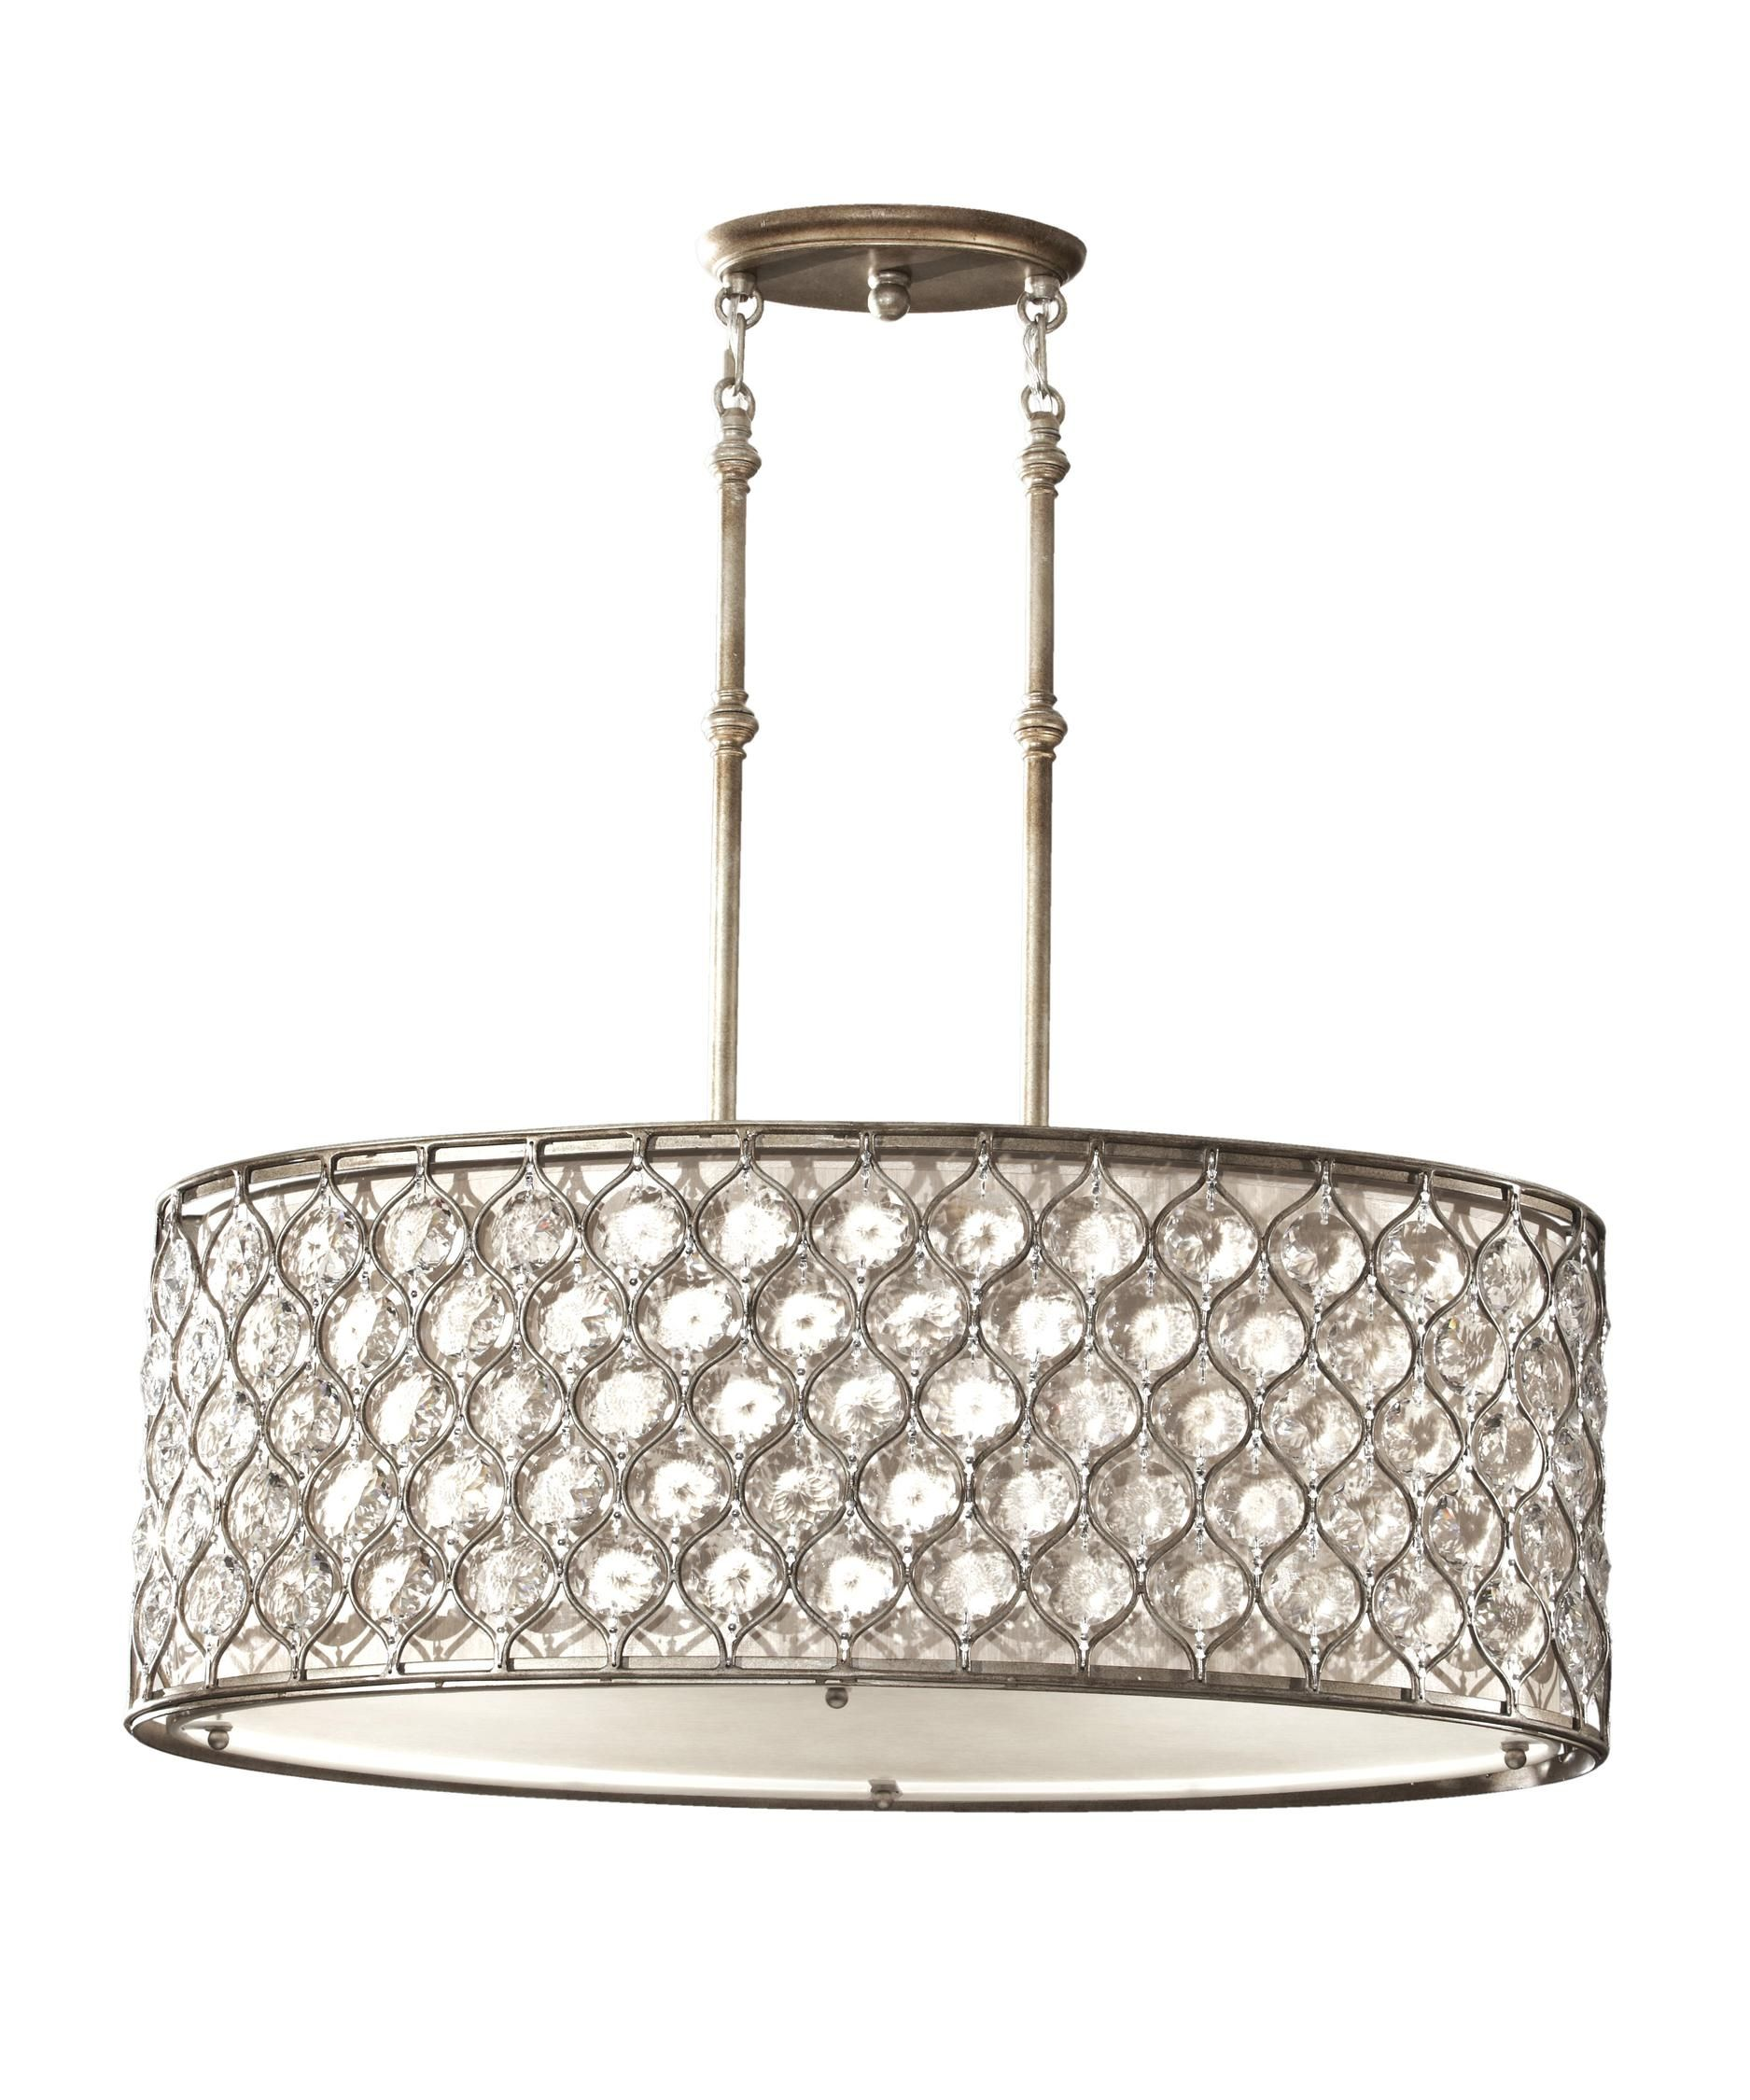 Feiss Lucia 32 Inch Large Pendant By Generation Lighting Pendant